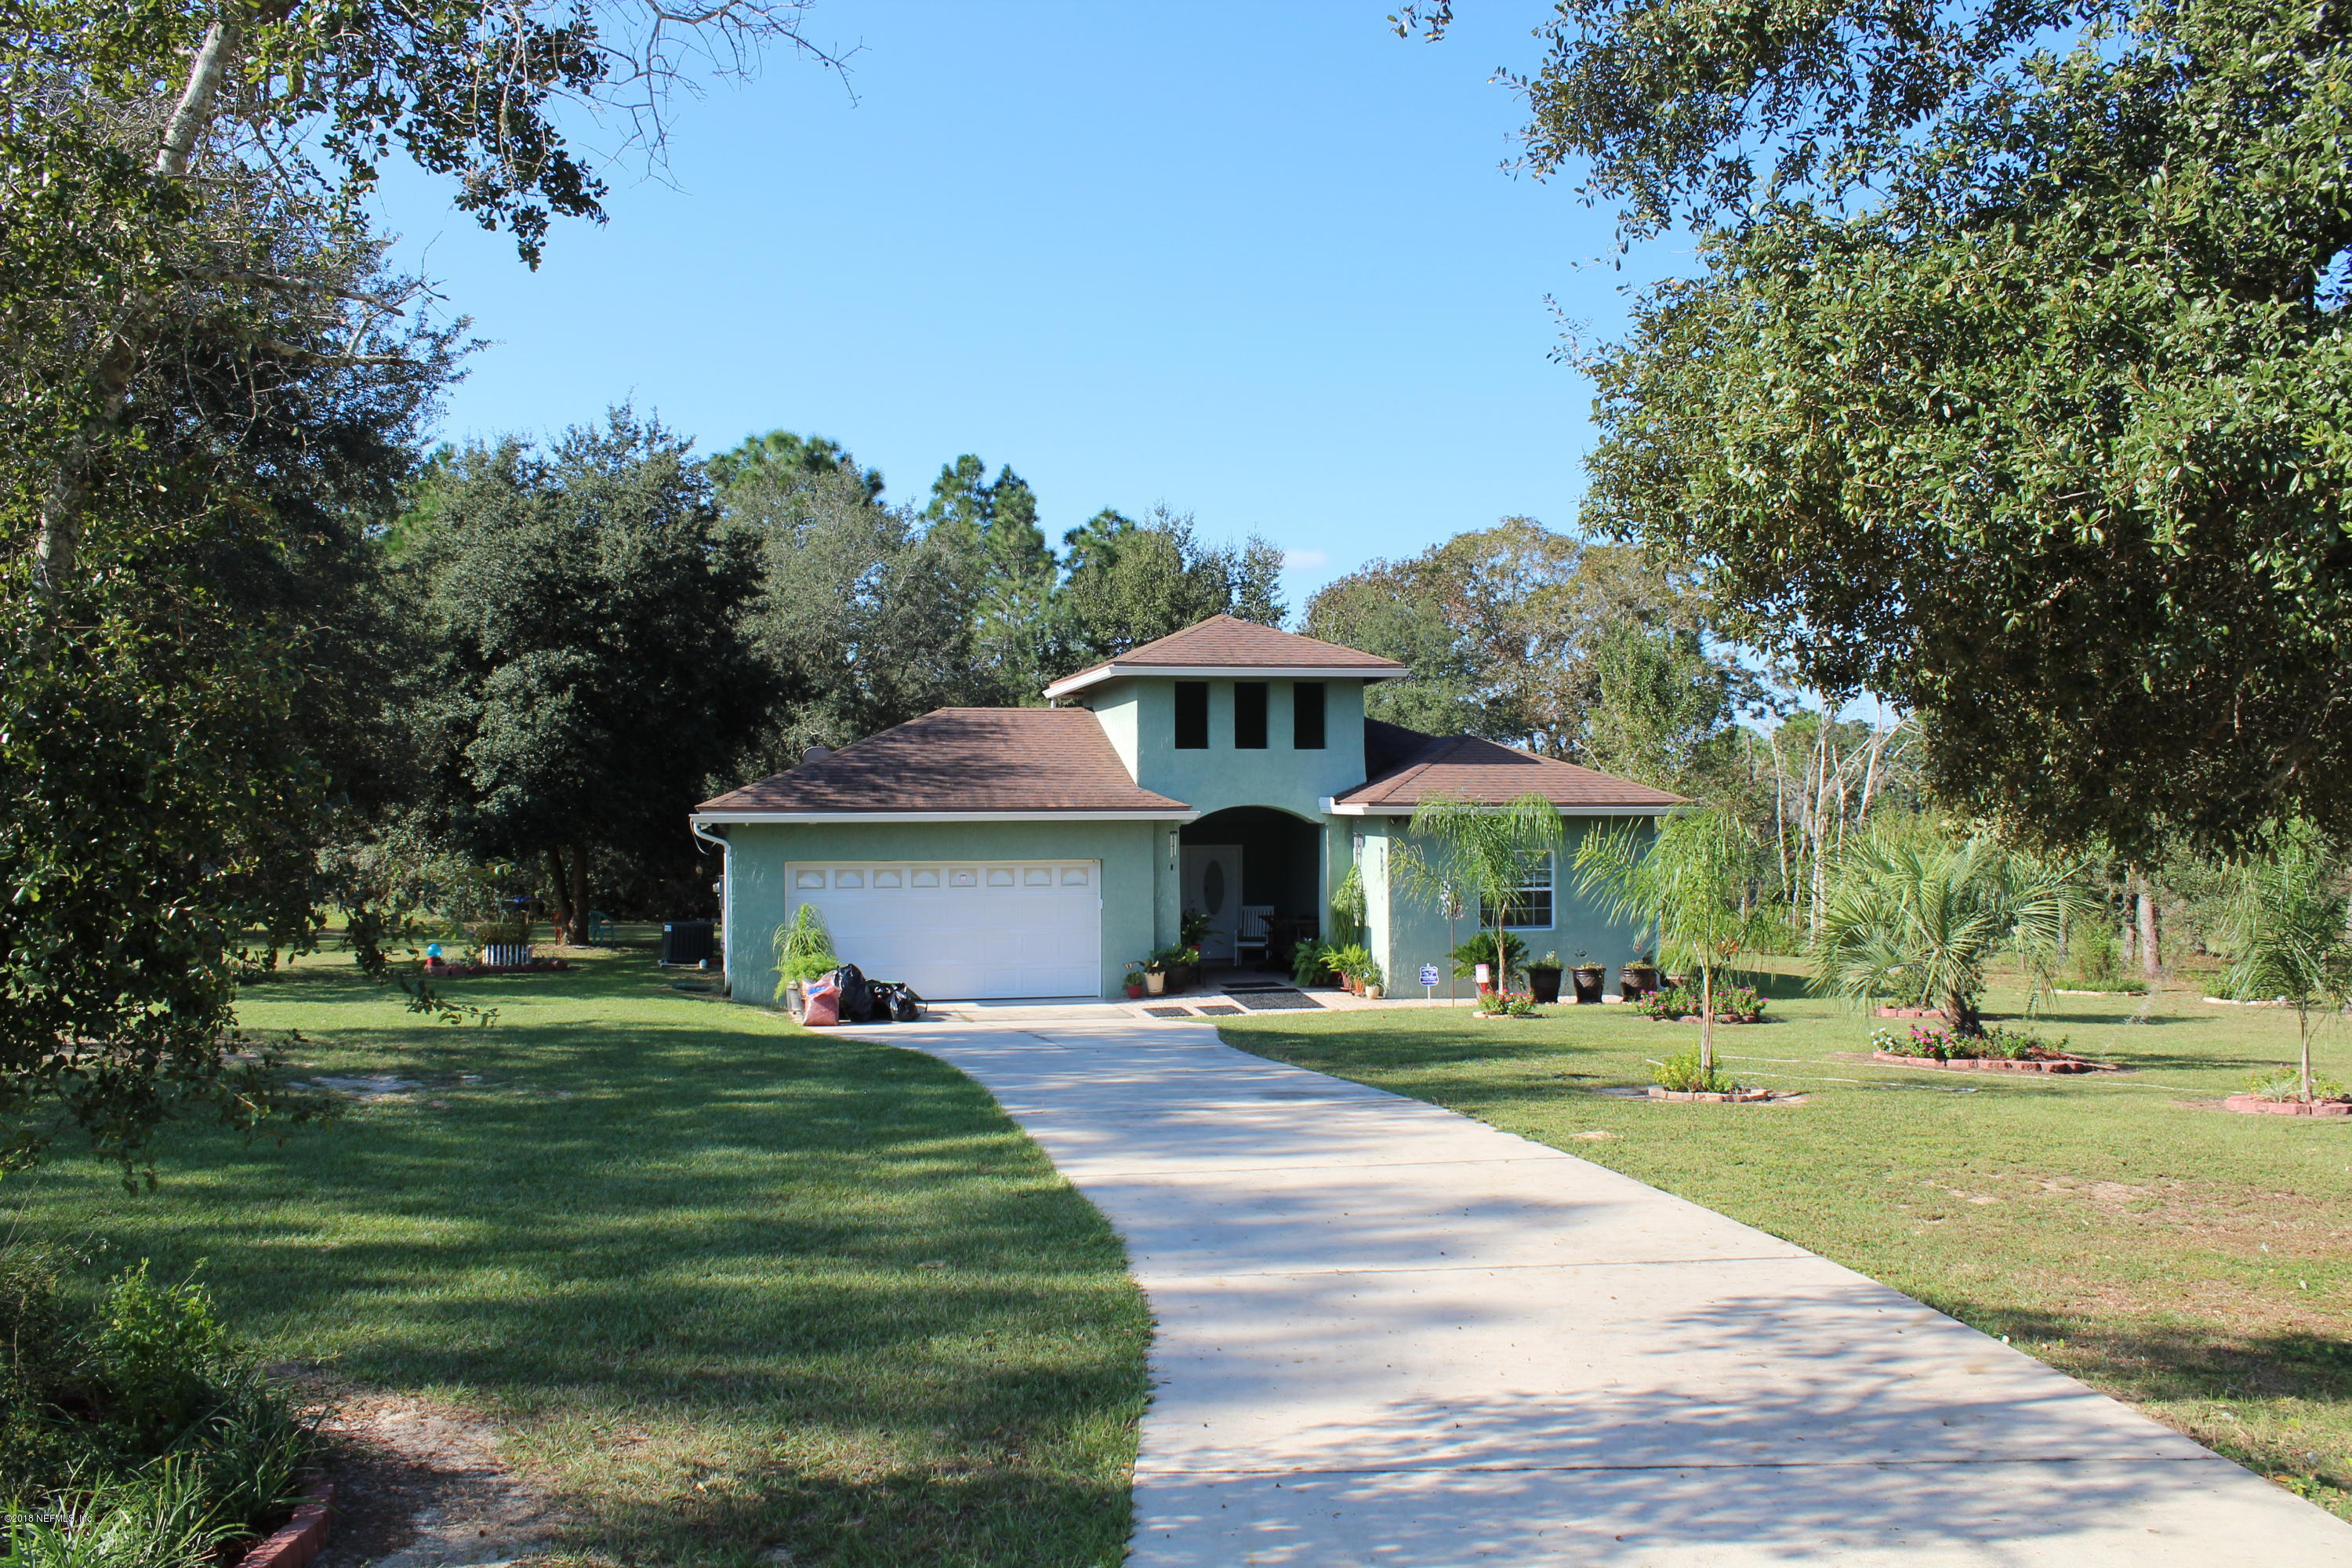 7176 GAS LINE, KEYSTONE HEIGHTS, FLORIDA 32656, 3 Bedrooms Bedrooms, ,2 BathroomsBathrooms,Residential - single family,For sale,GAS LINE,965039